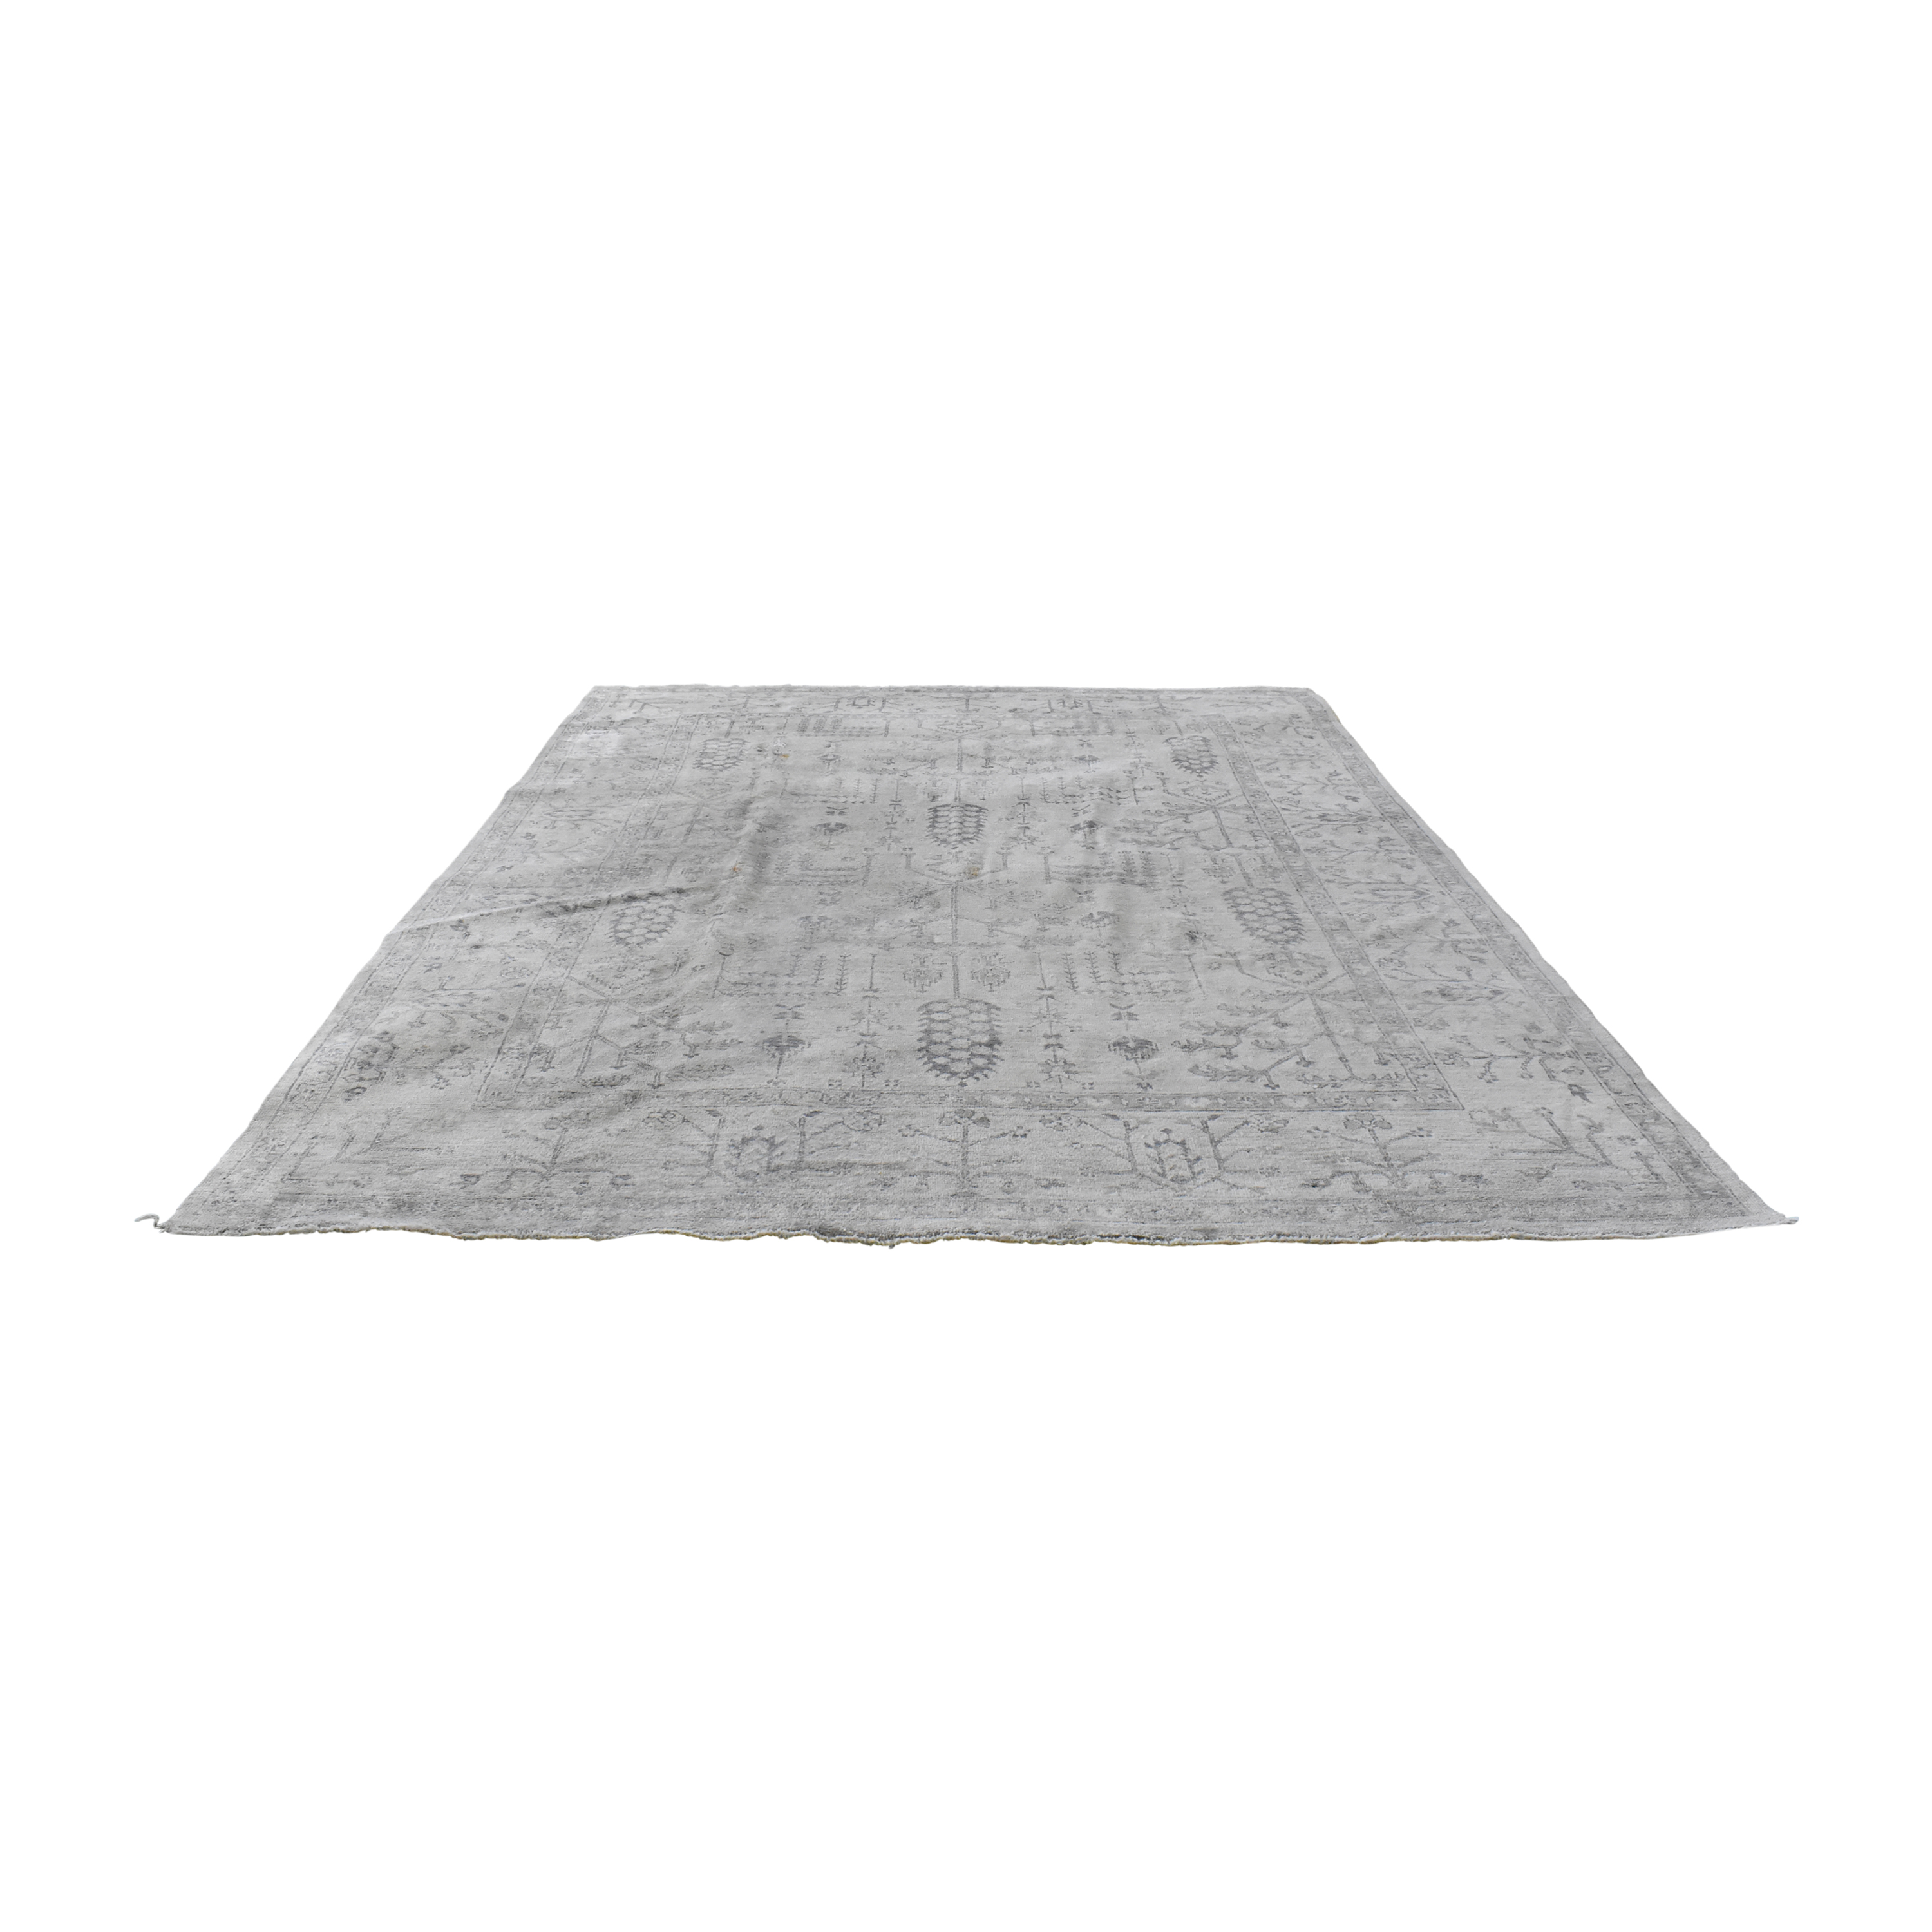 ABC Carpet & Home ABC Carpet & Home Sultanabad-Style Area Rug nyc